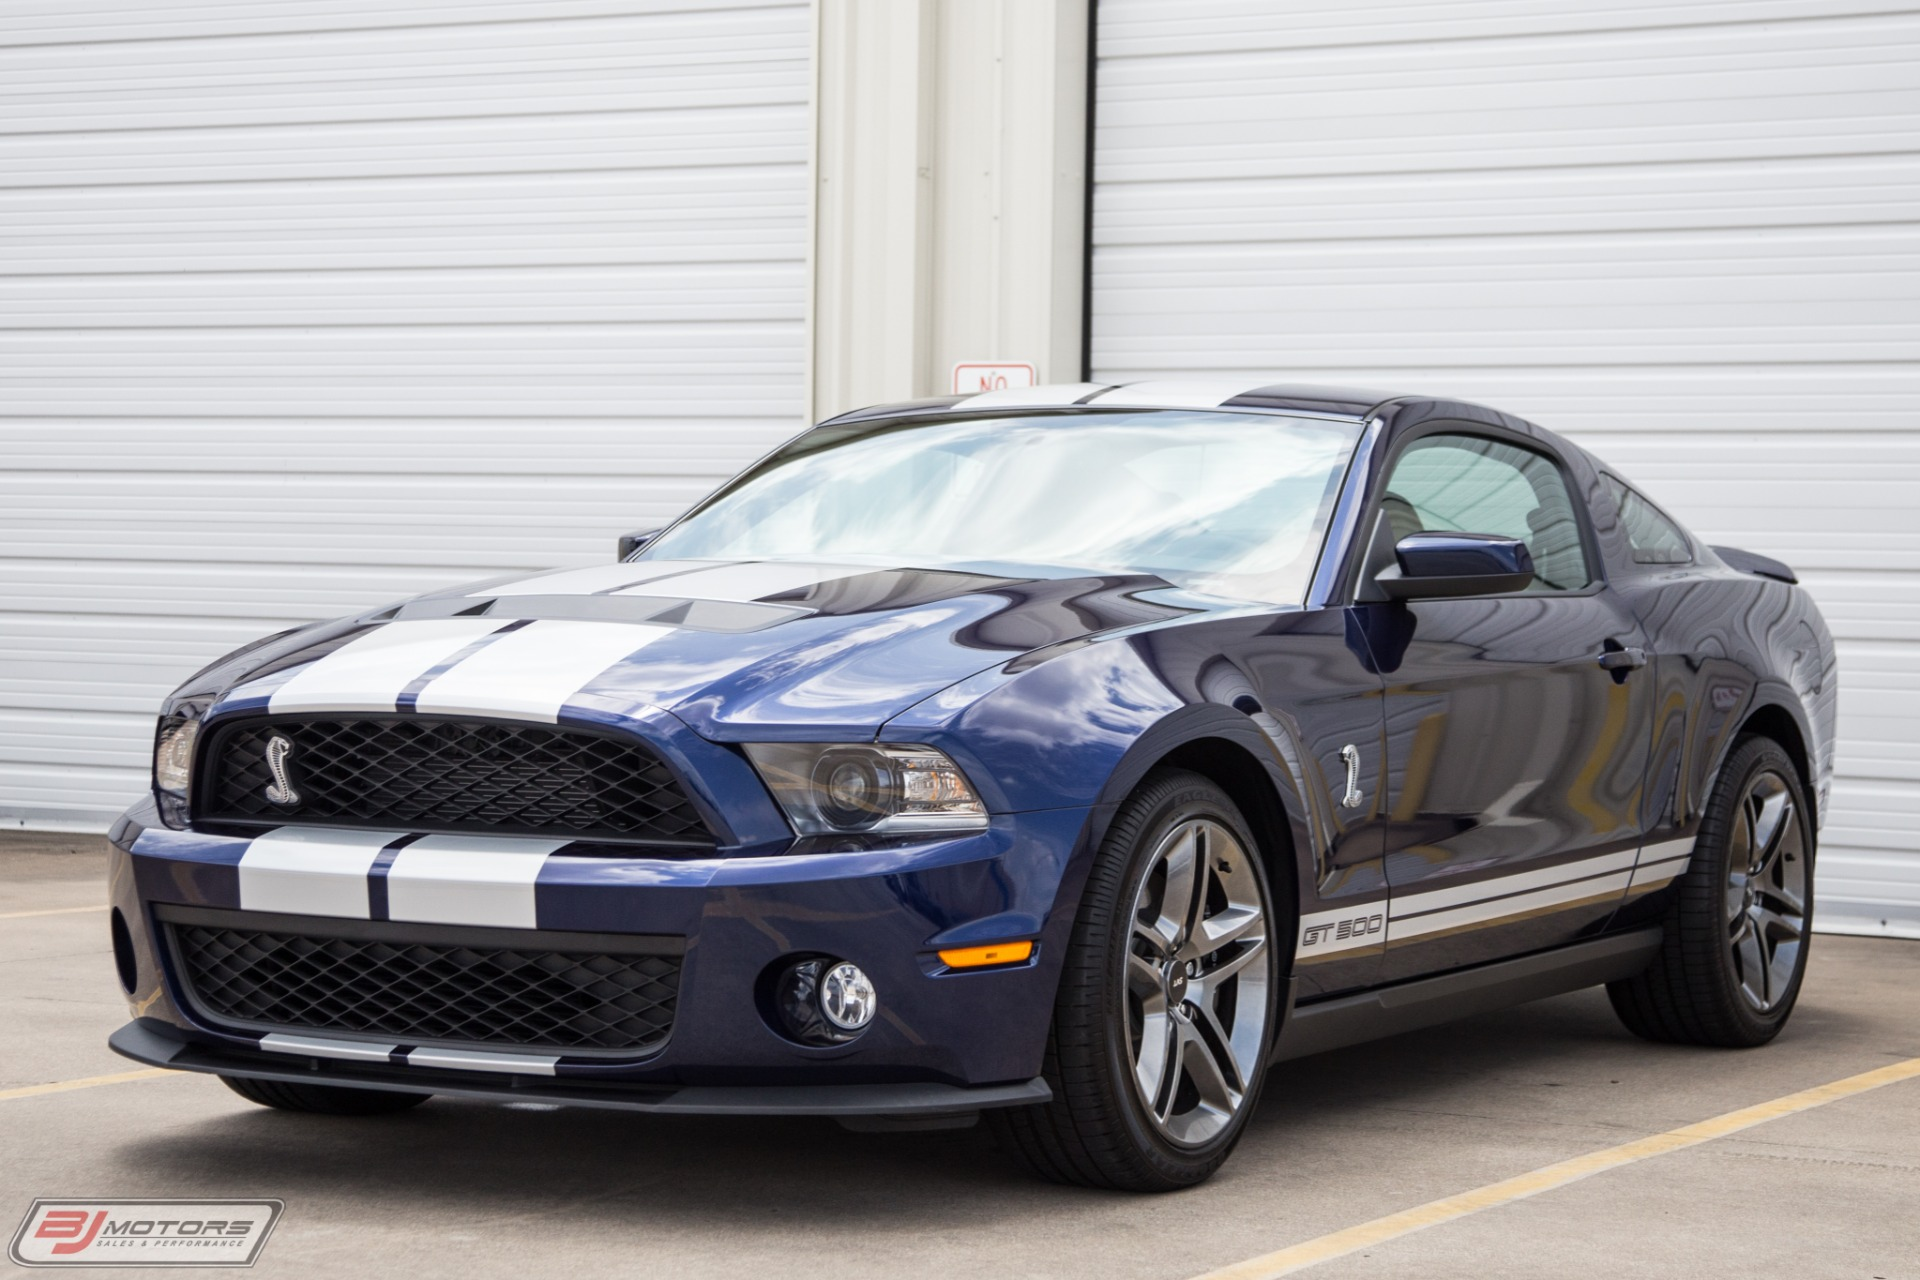 Used-2010-Ford-Mustang-Shelby-GT500-Only-187-Miles